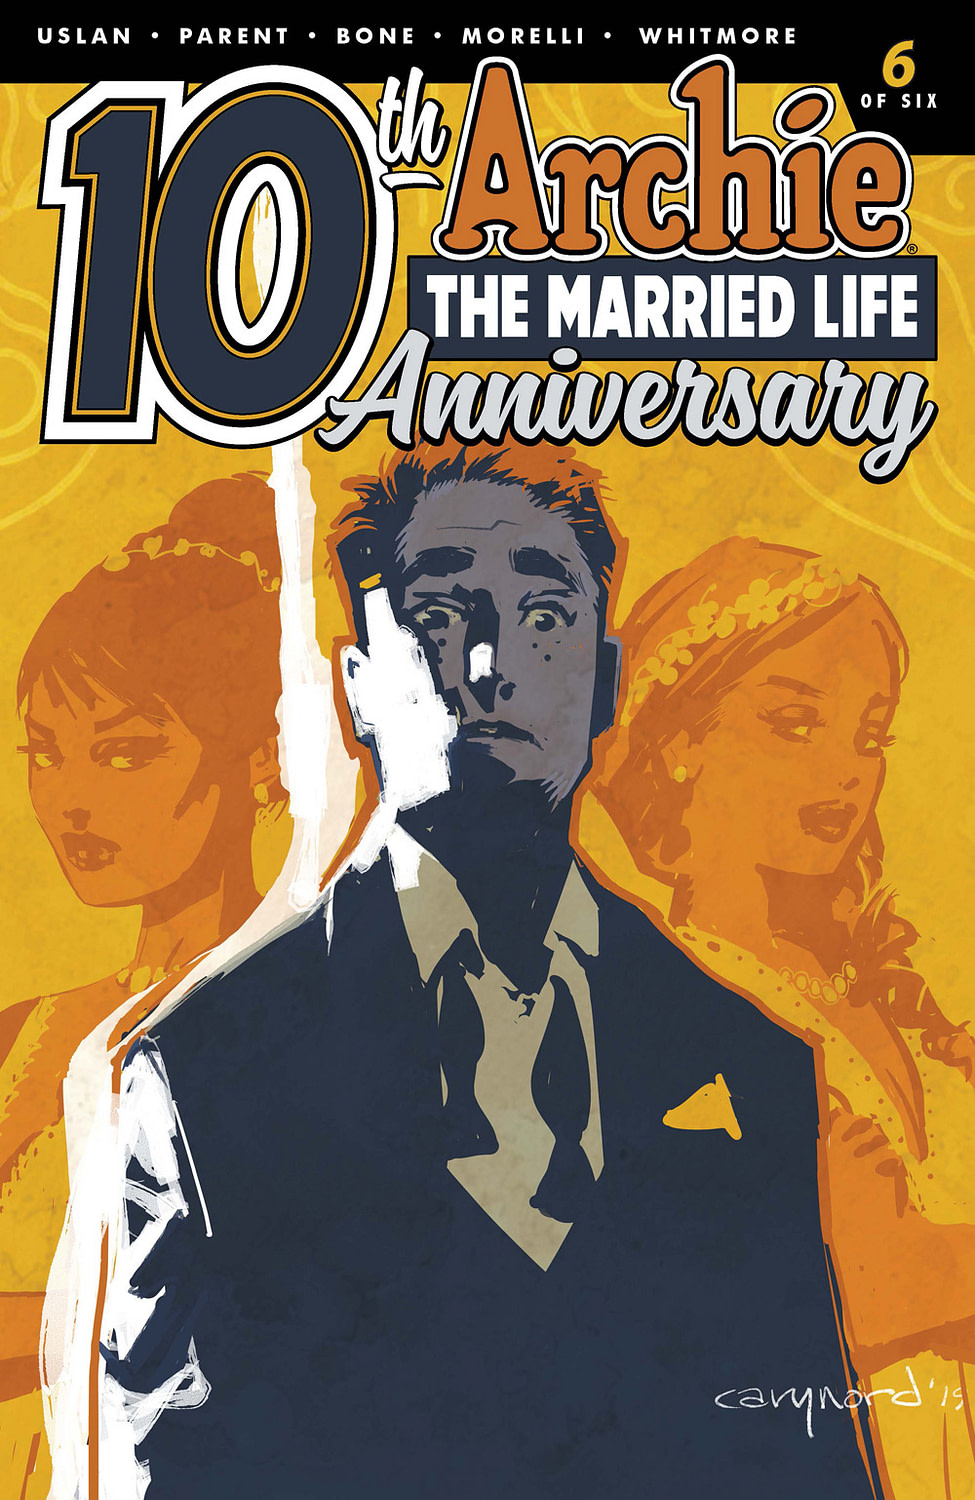 Shocking Election Results in this Preview of Archie: The Married Life: 10th Anniversary #6